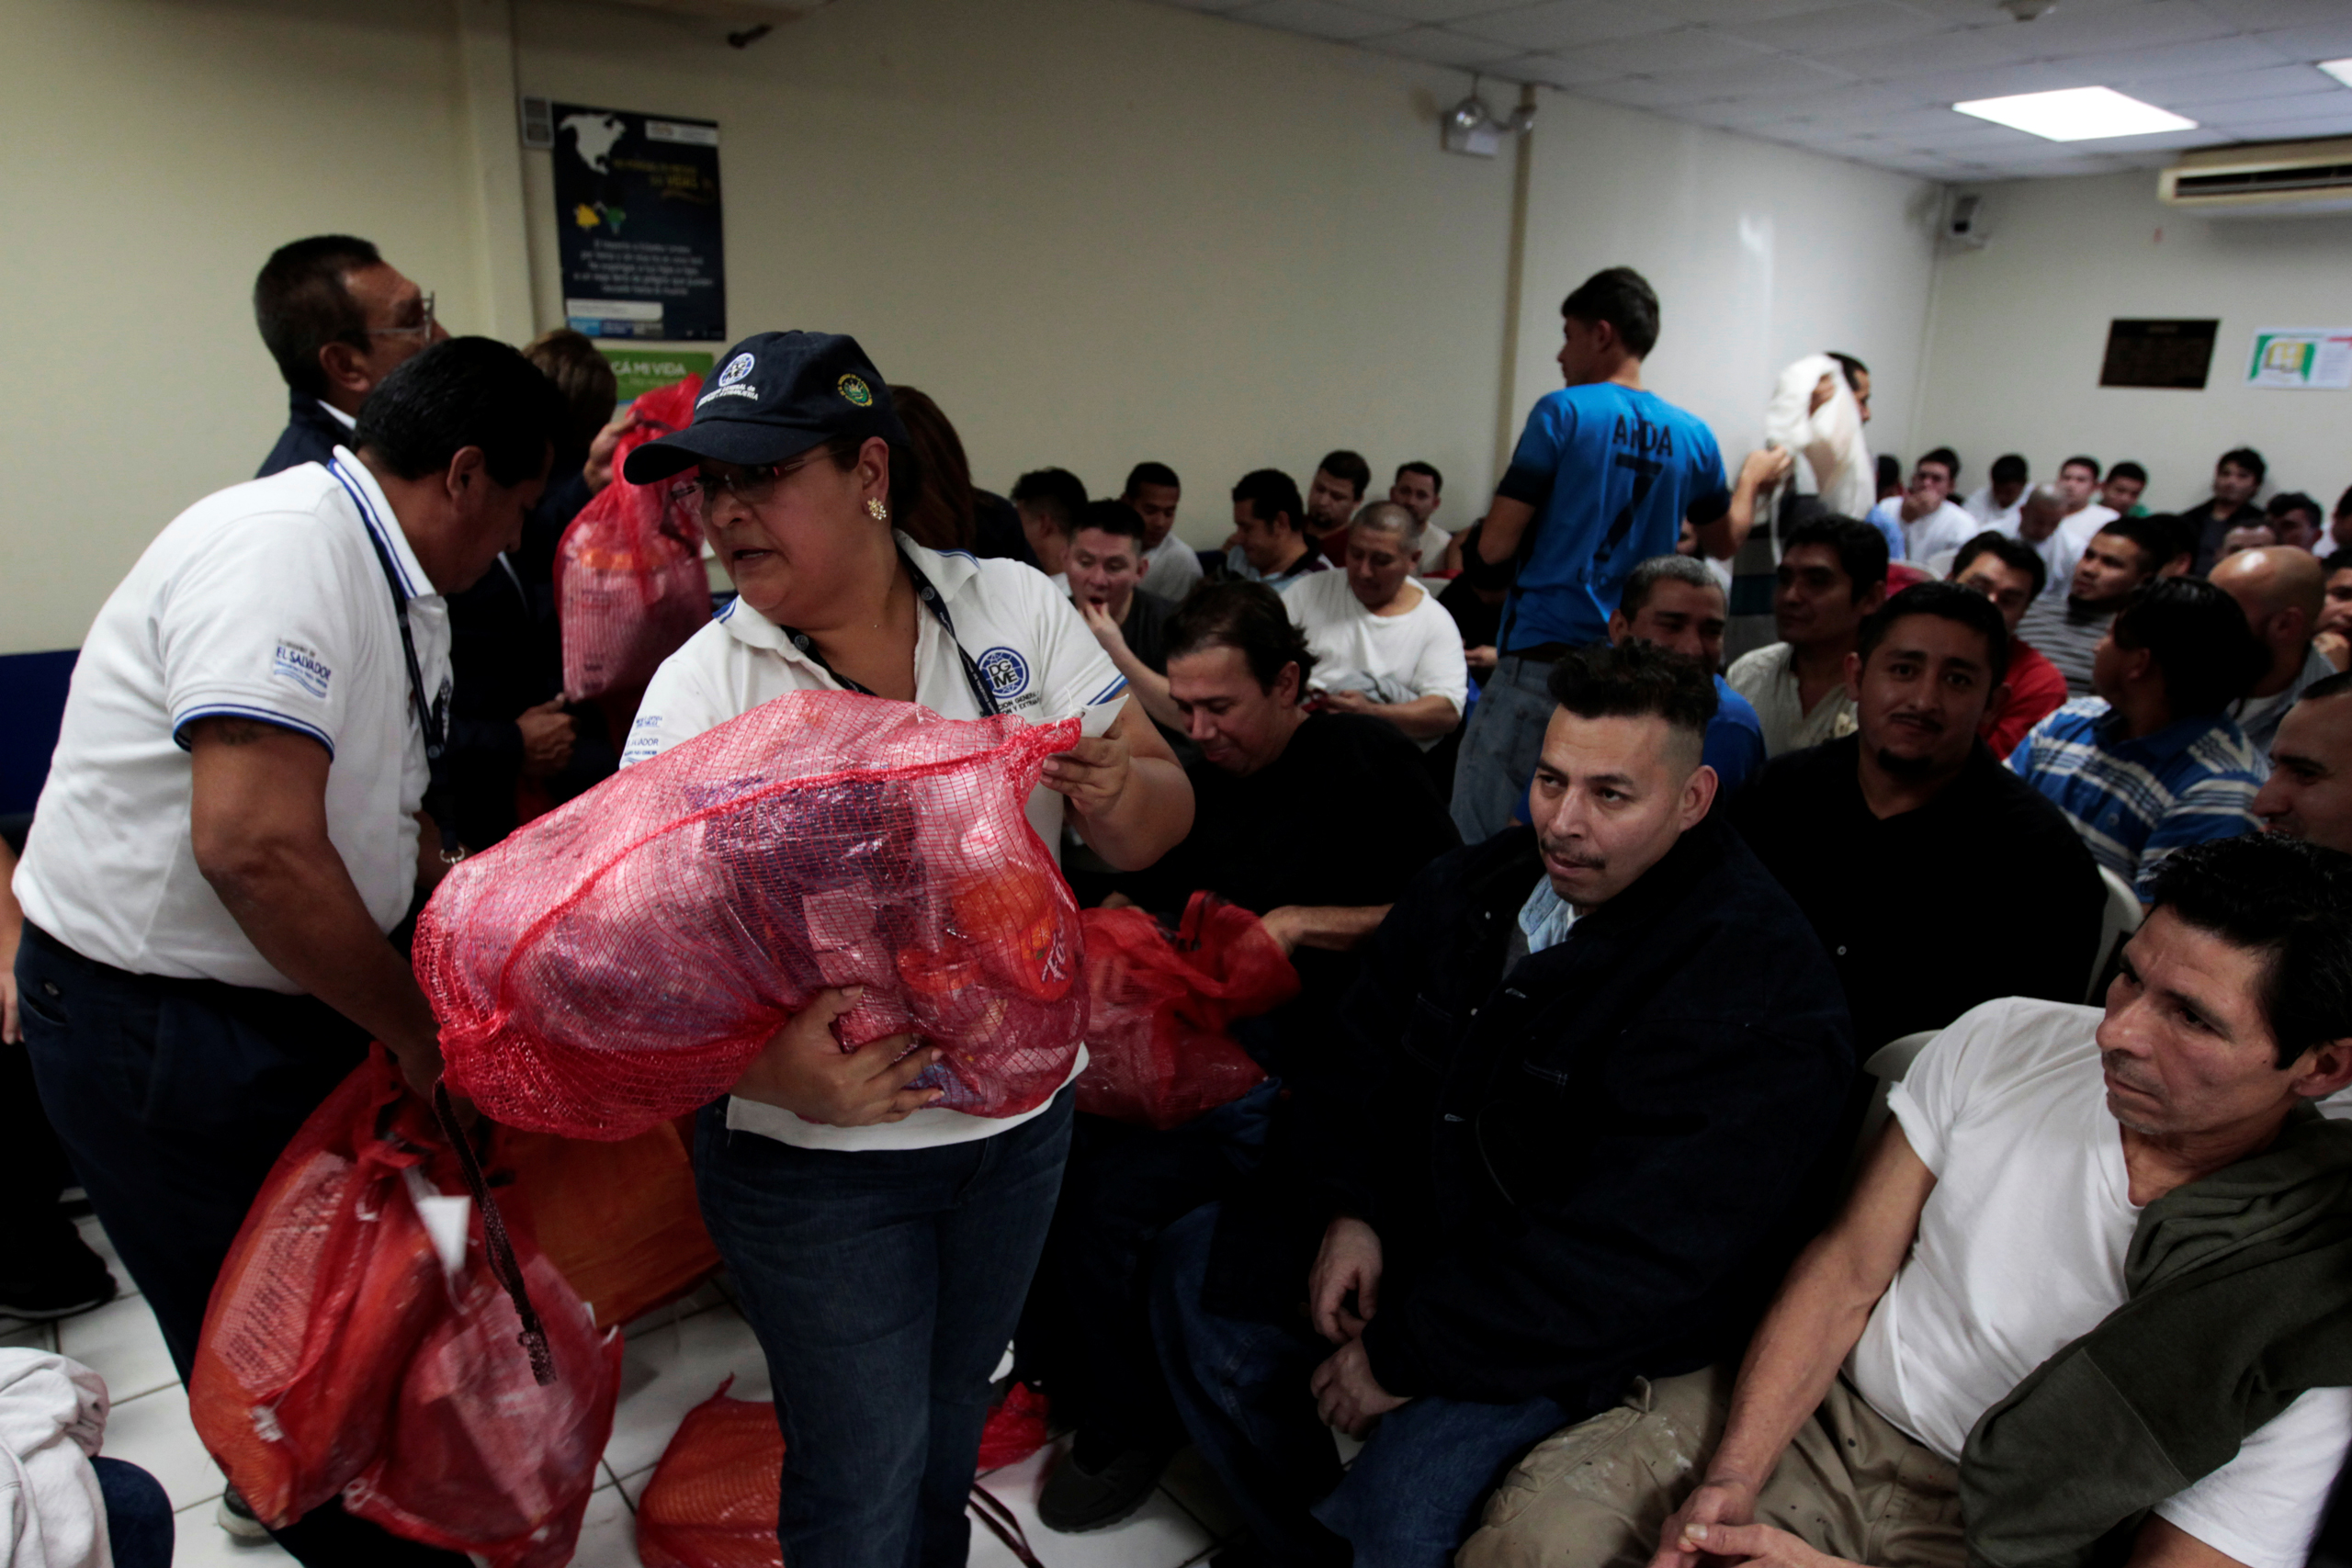 Immigration workers process bags with belongings at an immigration facility after a flight carrying illegal immigrants from the U.S. arrived at the Oscar Arnulfo Romero International Airport in San Luis Talpa, El Salvador, on Jan. 27, 2017.